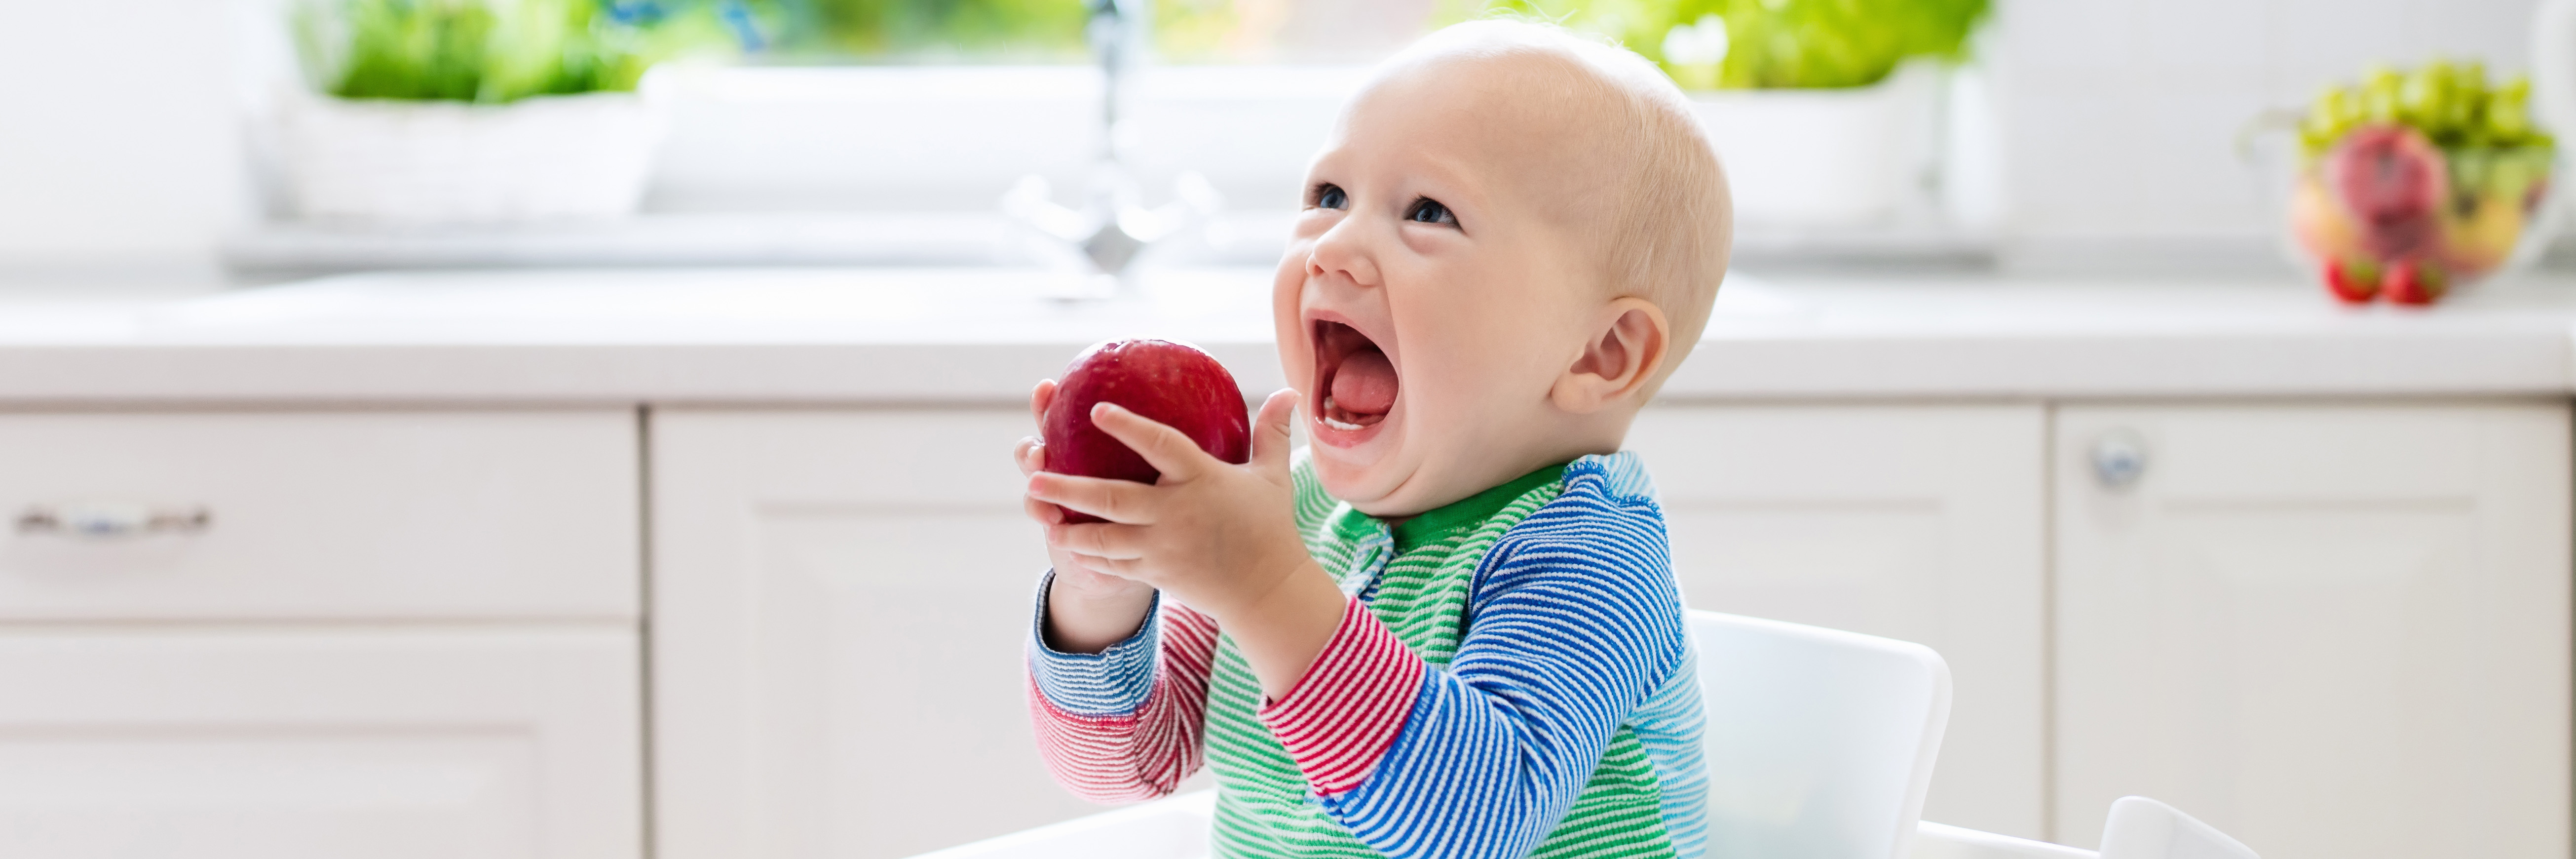 Toddler Choking Hazards and Prevention